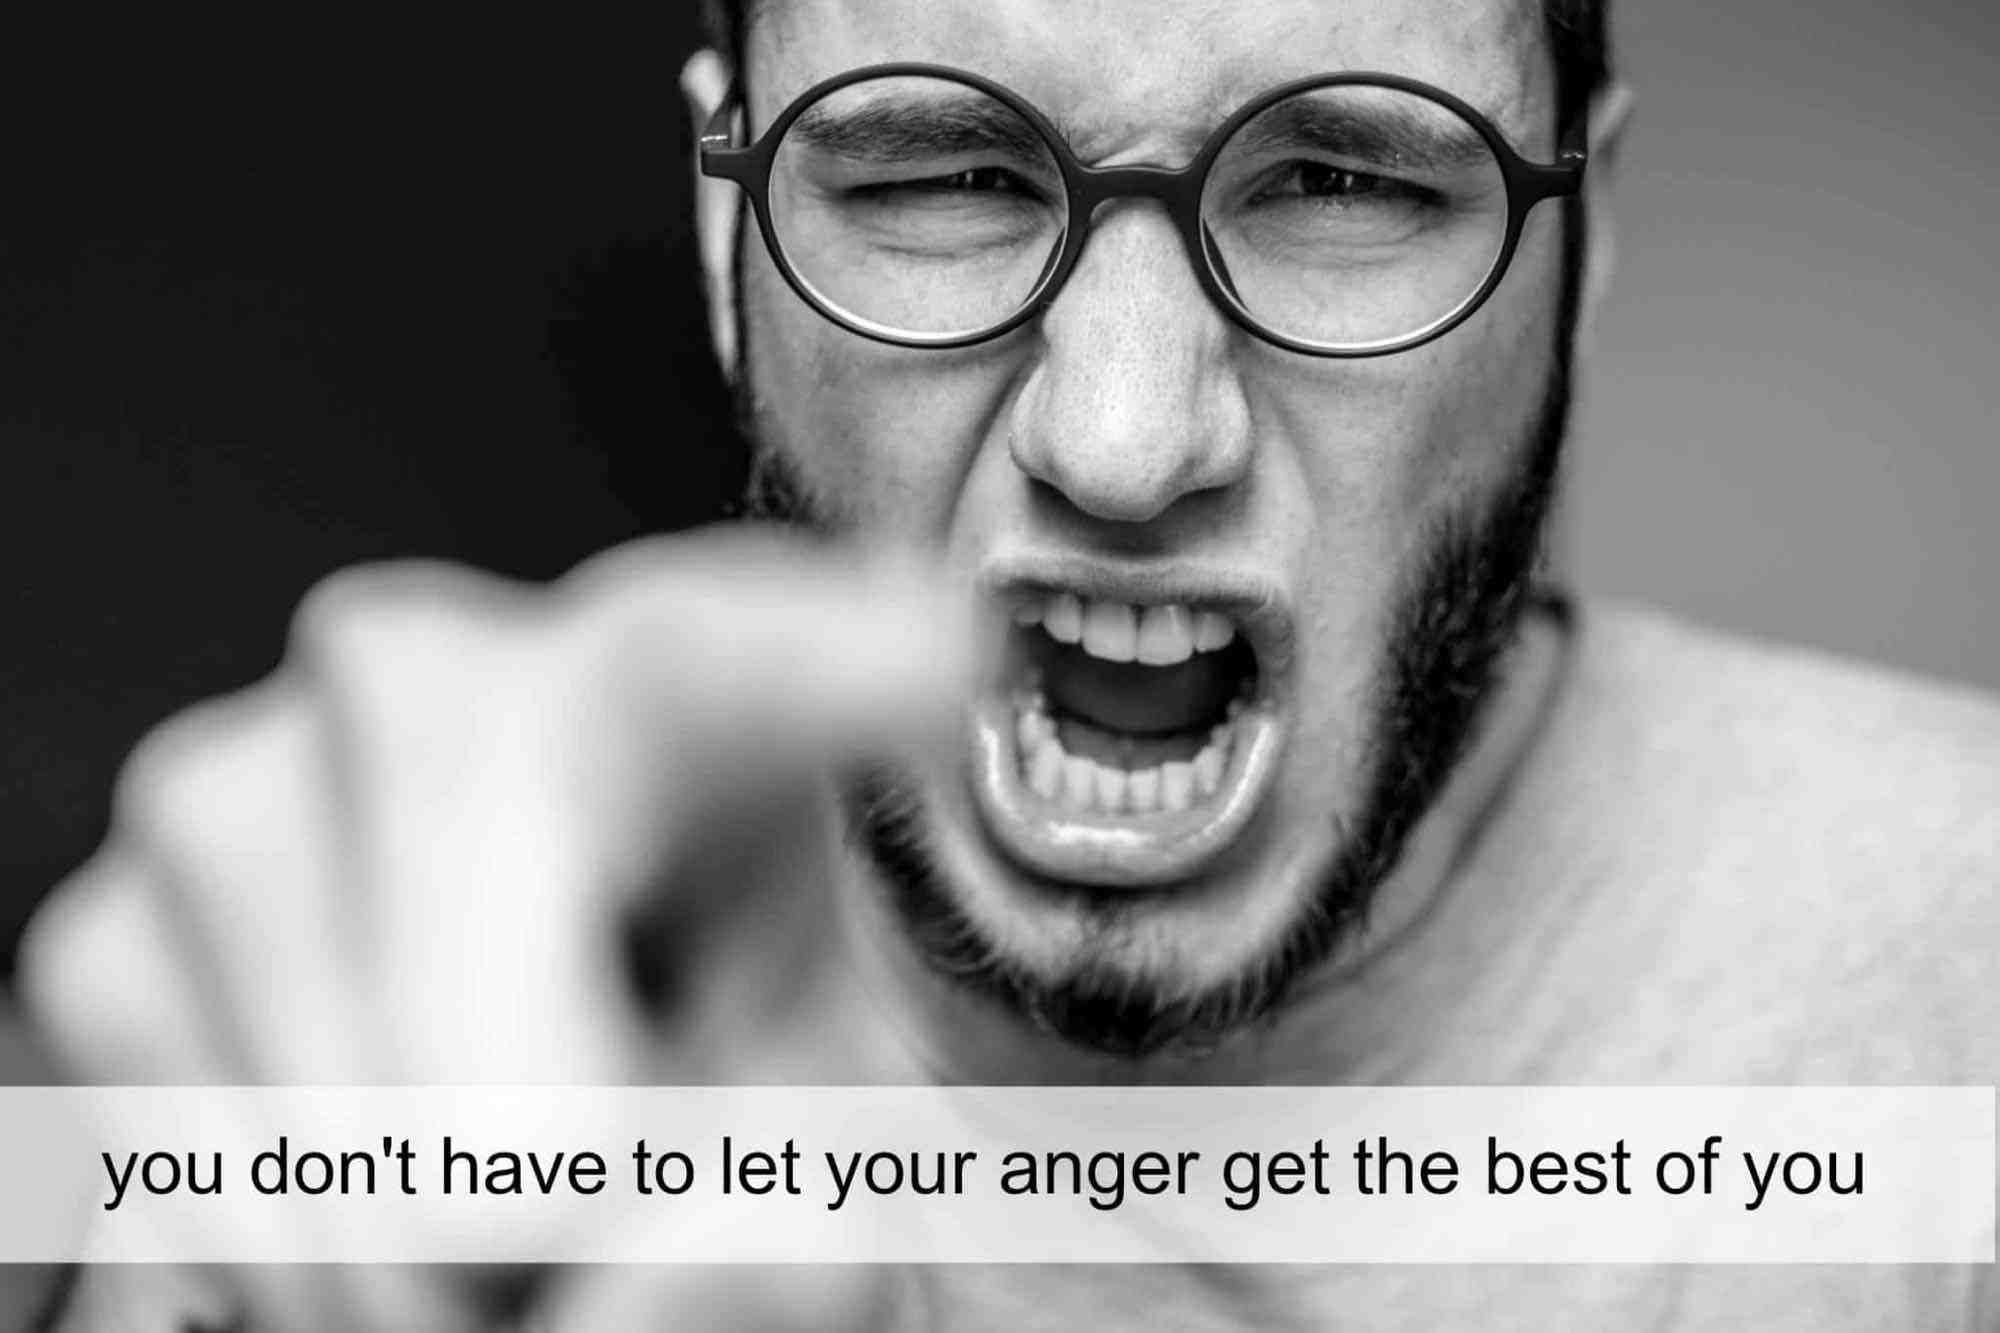 Wrath Fury Rage Whatever You Call It Anger Is A Powerful Emotion Unfortunately Its Often An Unhelpful One